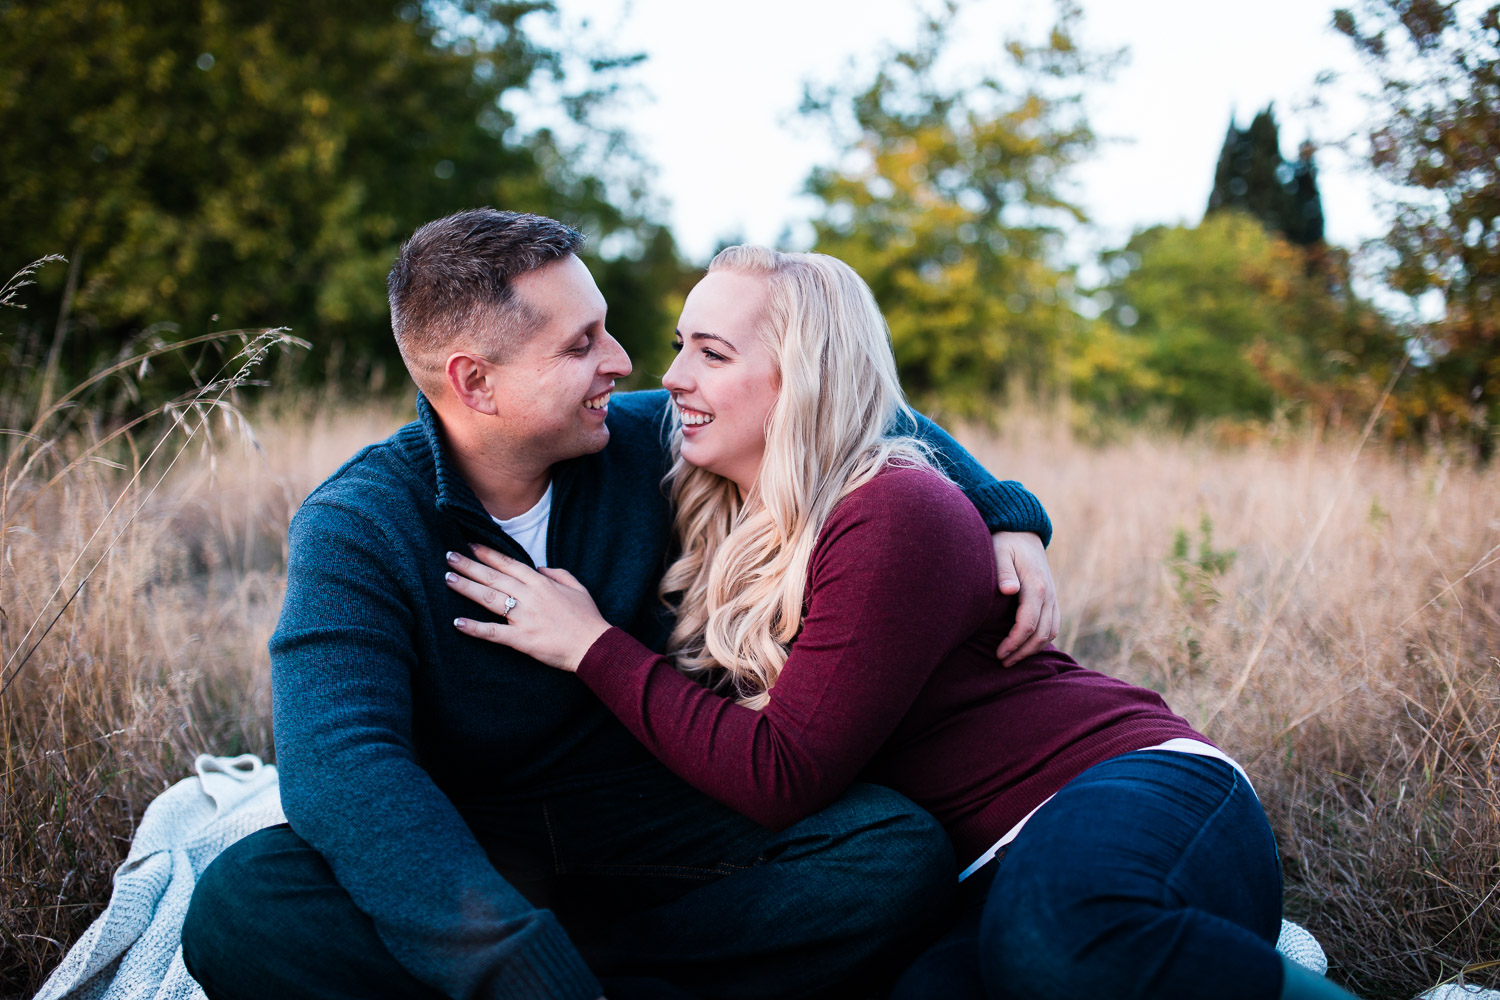 seattle-engagement-harth-photography-60.jpg